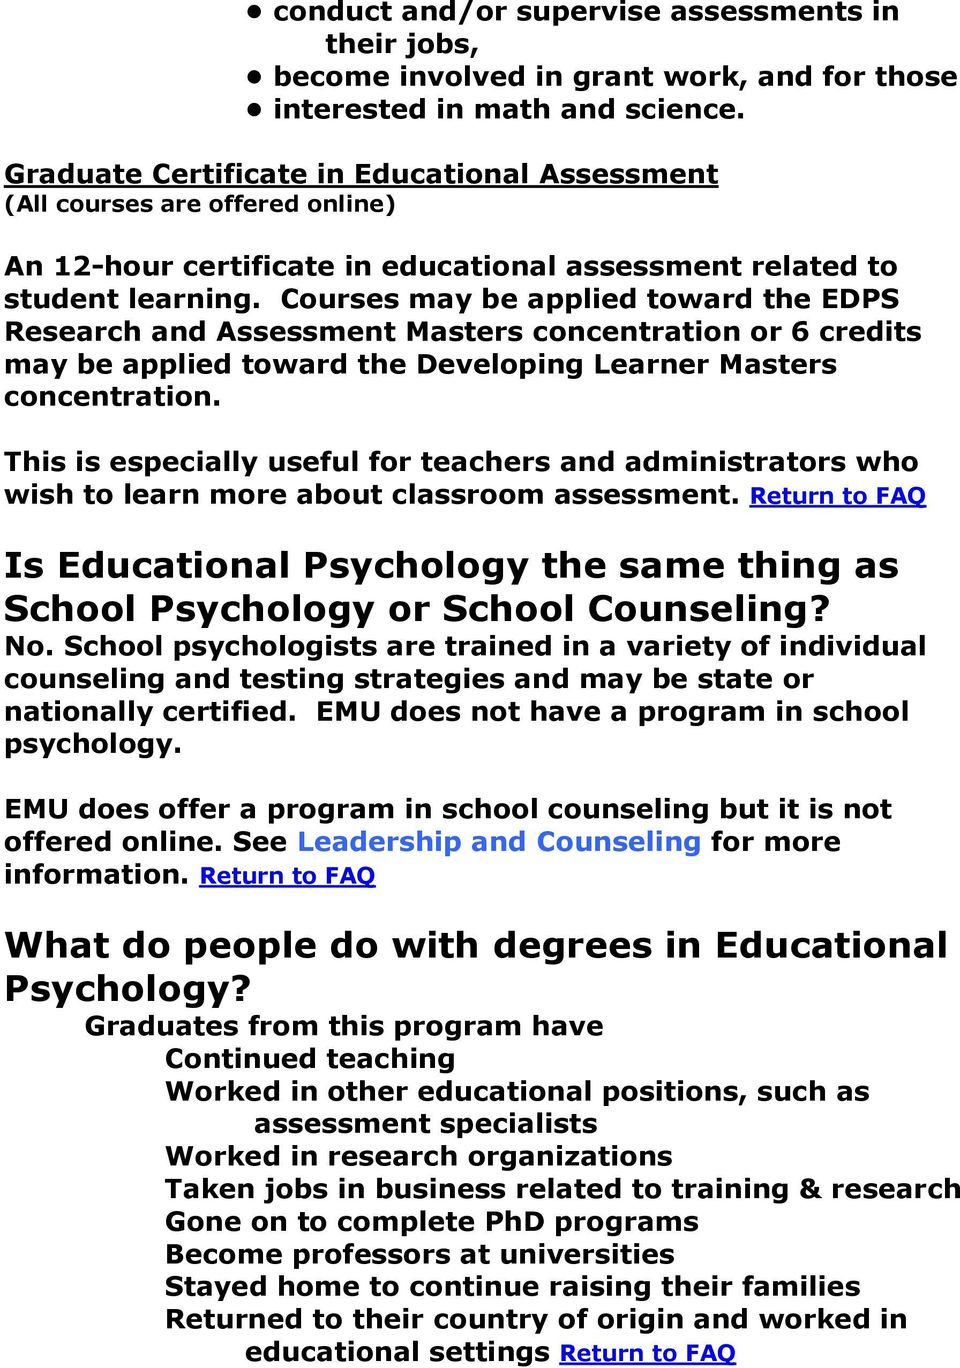 Courses may be applied toward the EDPS Research and Assessment Masters concentration or 6 credits may be applied toward the Developing Learner Masters concentration.